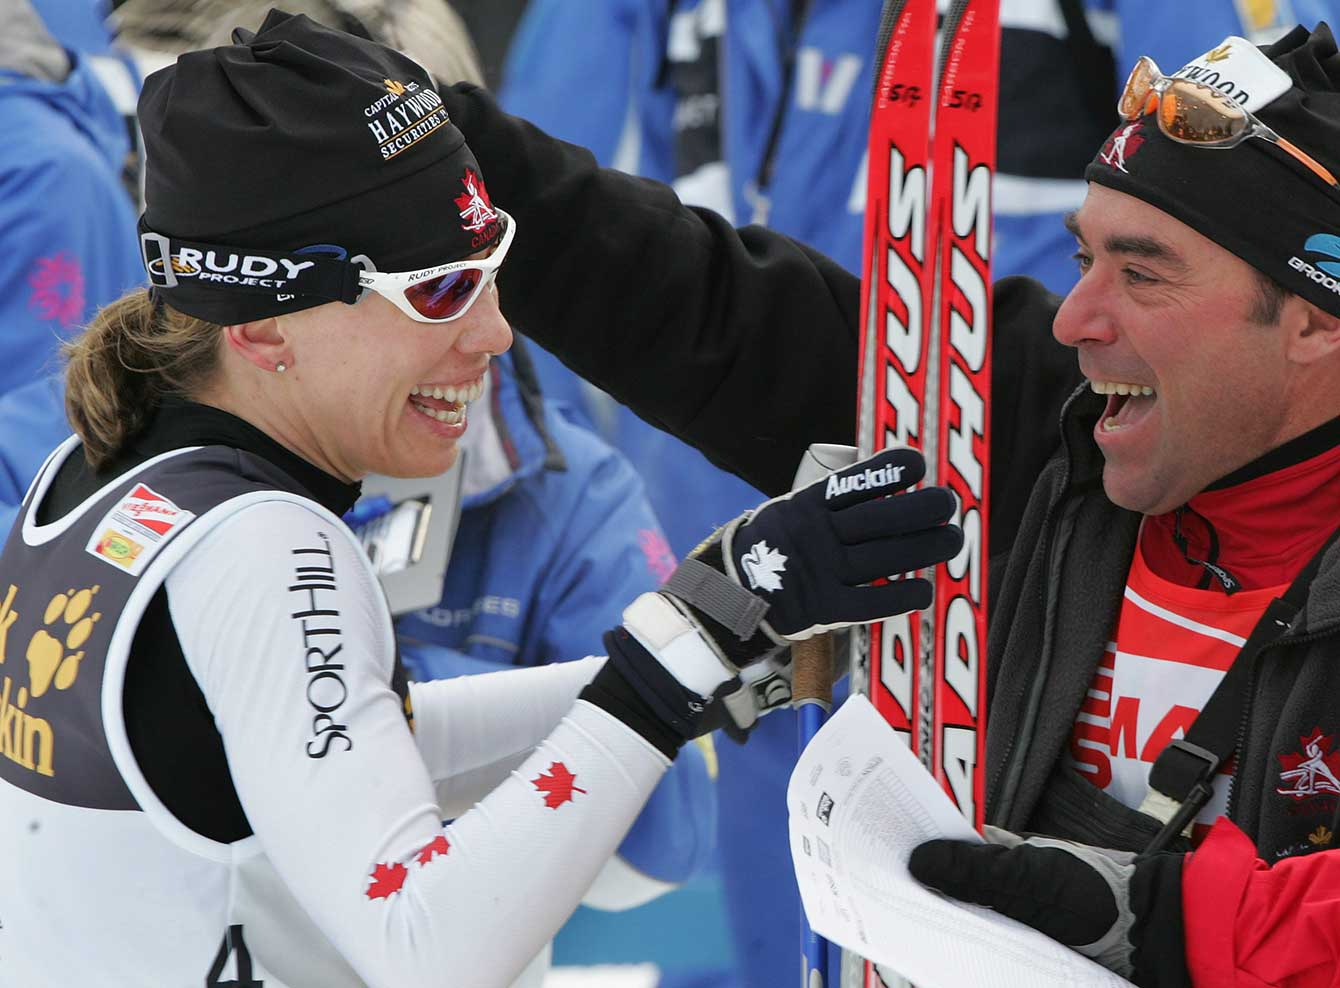 Canada's Beckie Scott celebrates her victory in the 15 km women's pursuit race at the cross country skiing World Cup races in Oberstdorf, southern Germany, Saturday, Jan. 21, 2006 with head wax technician Yves Bilodeau. (AP Photo/Diether Endlicher)